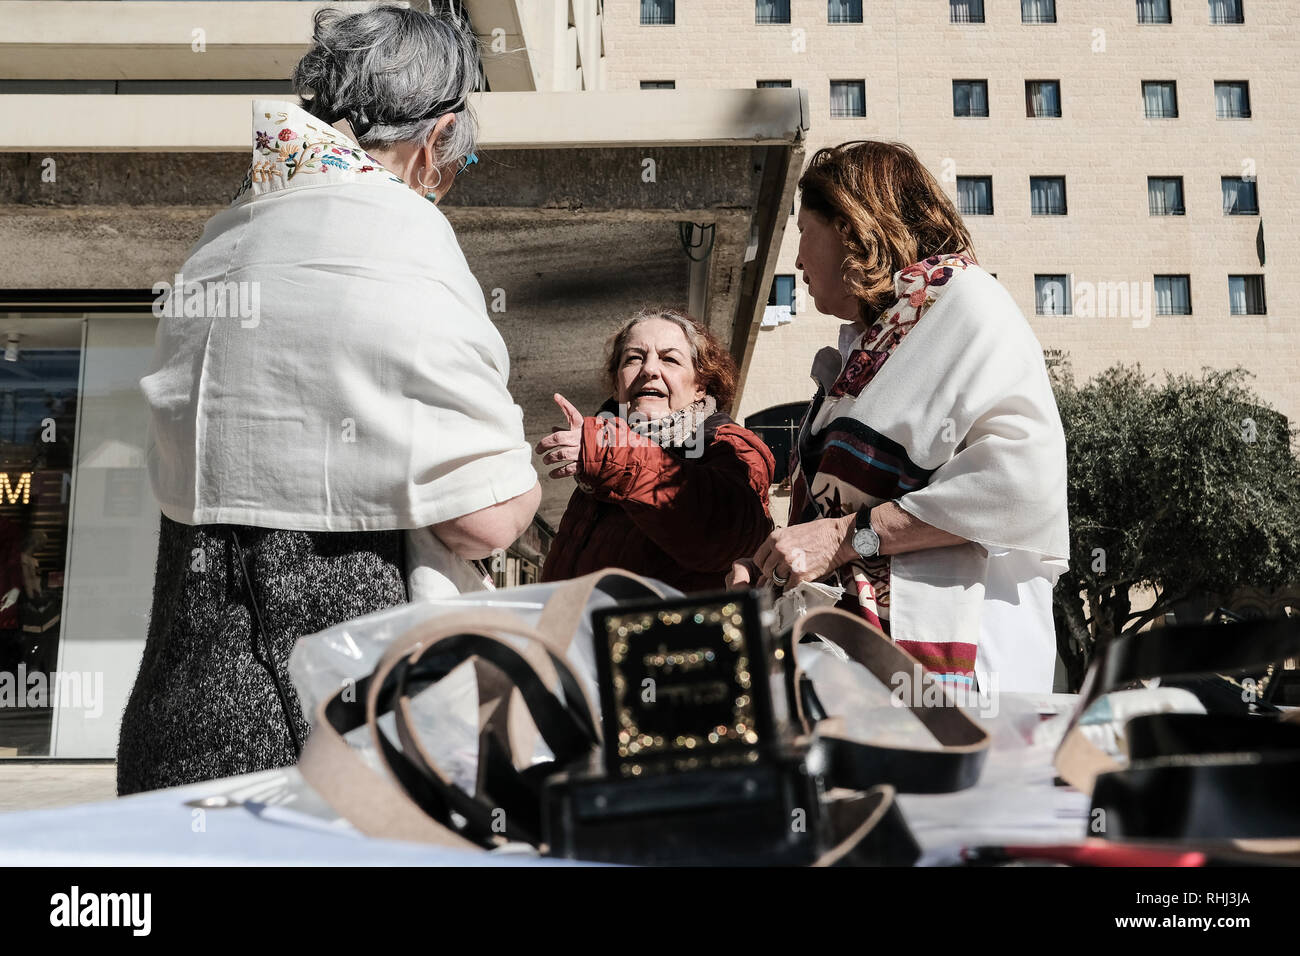 Jerusalem, Israel. 3rd February, 2019. Women of the Wall, an organization famous for fighting for women's prayer rights at the Western Wall, runs a tefillin, or phylacteries, wrap stand for women in Jerusalem's down town on World Wide Wrap Day. Municipal approval for the move was received after repeated appeals over several months. Credit: Nir Alon/Alamy Live News - Stock Image